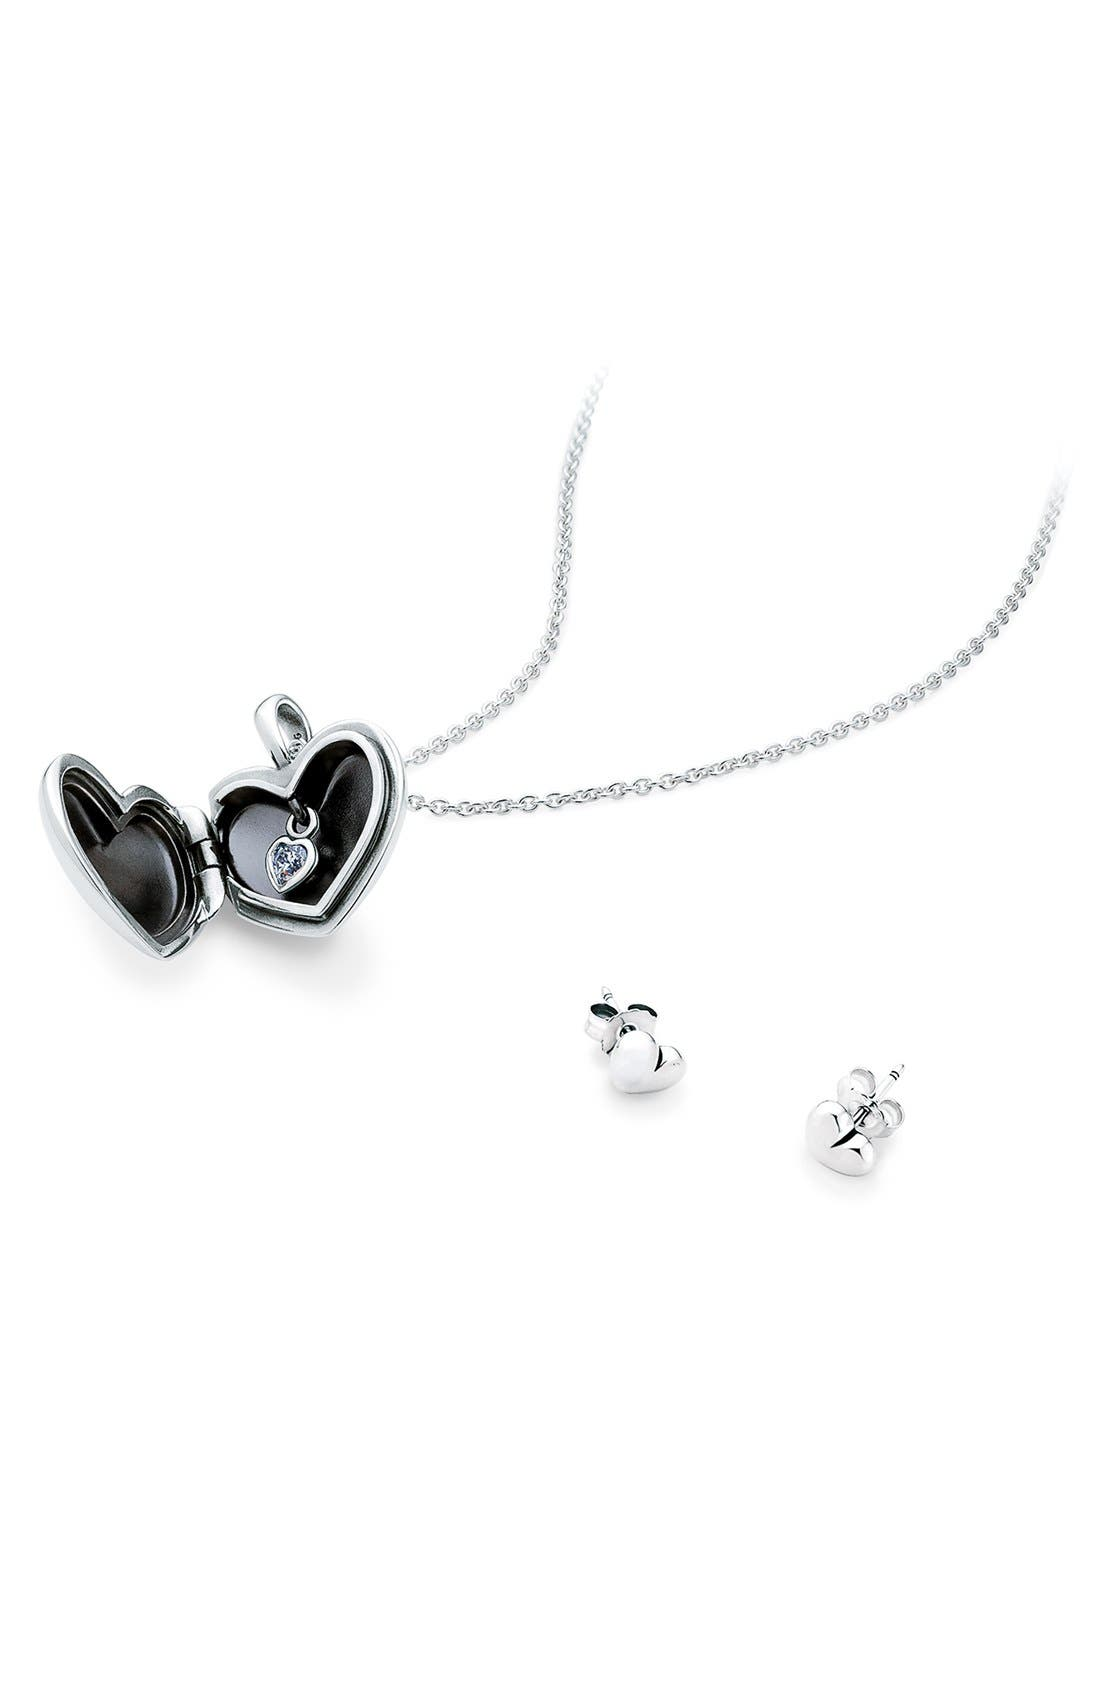 Main Image - PANDORA 'Love' Locket Necklace & Earring Set ($185 Value)